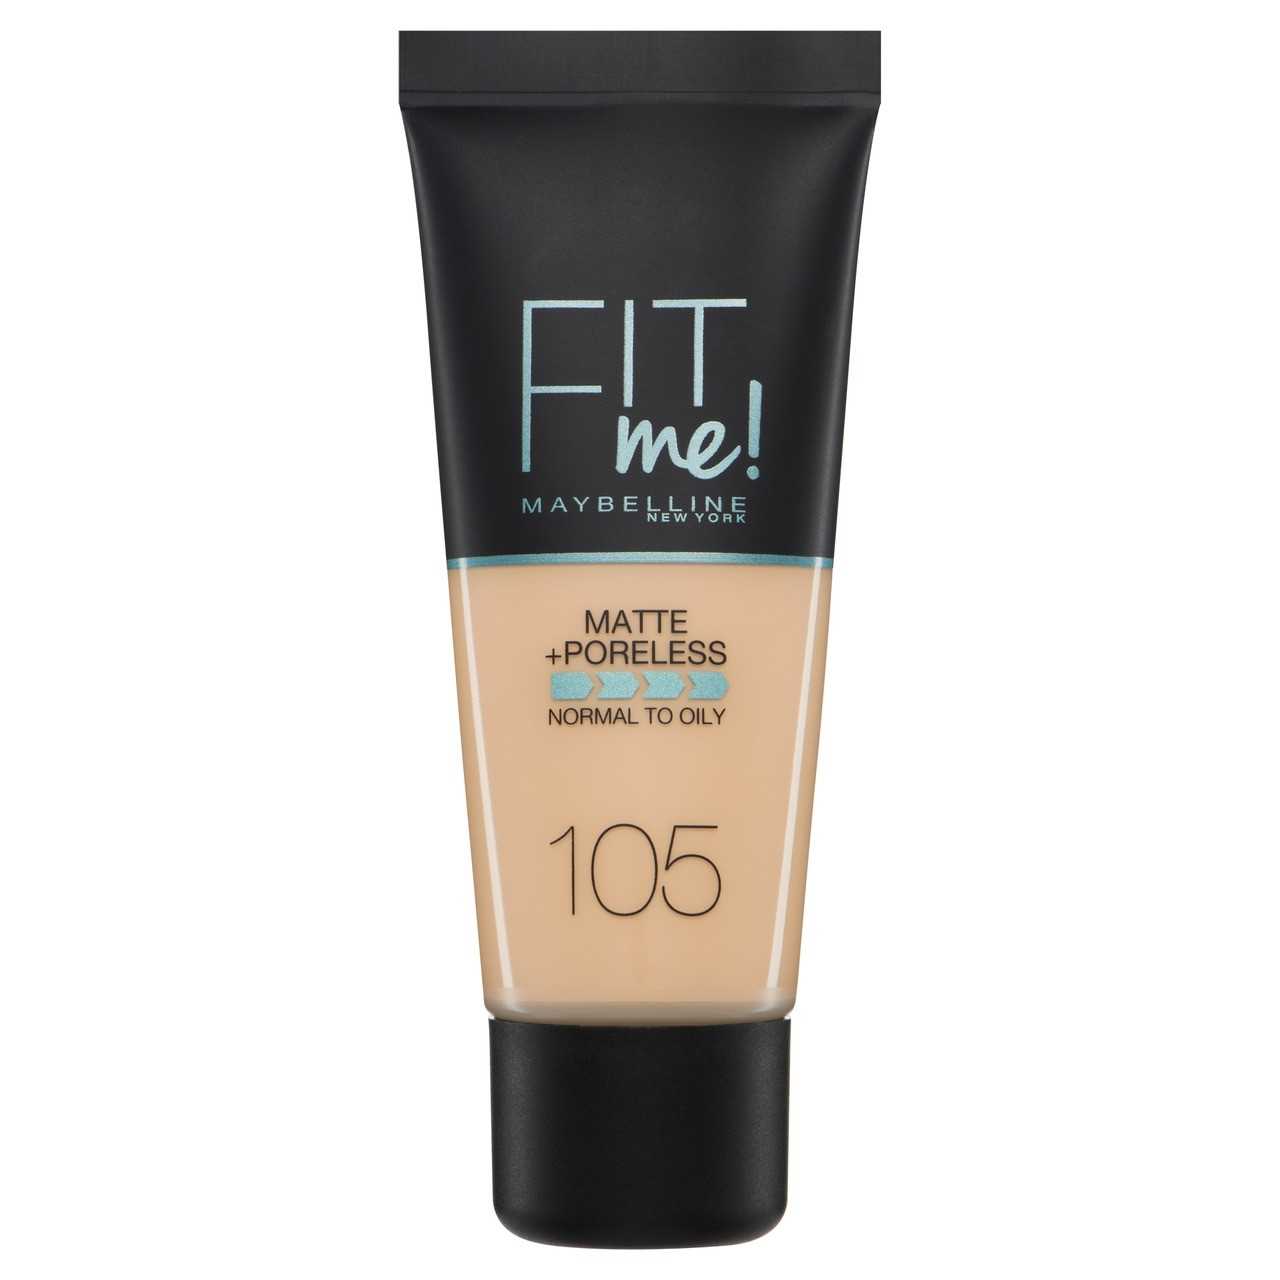 Maybelline - Base Liquida Fit Me Matte & Poreless -  105 - Fair Ivory